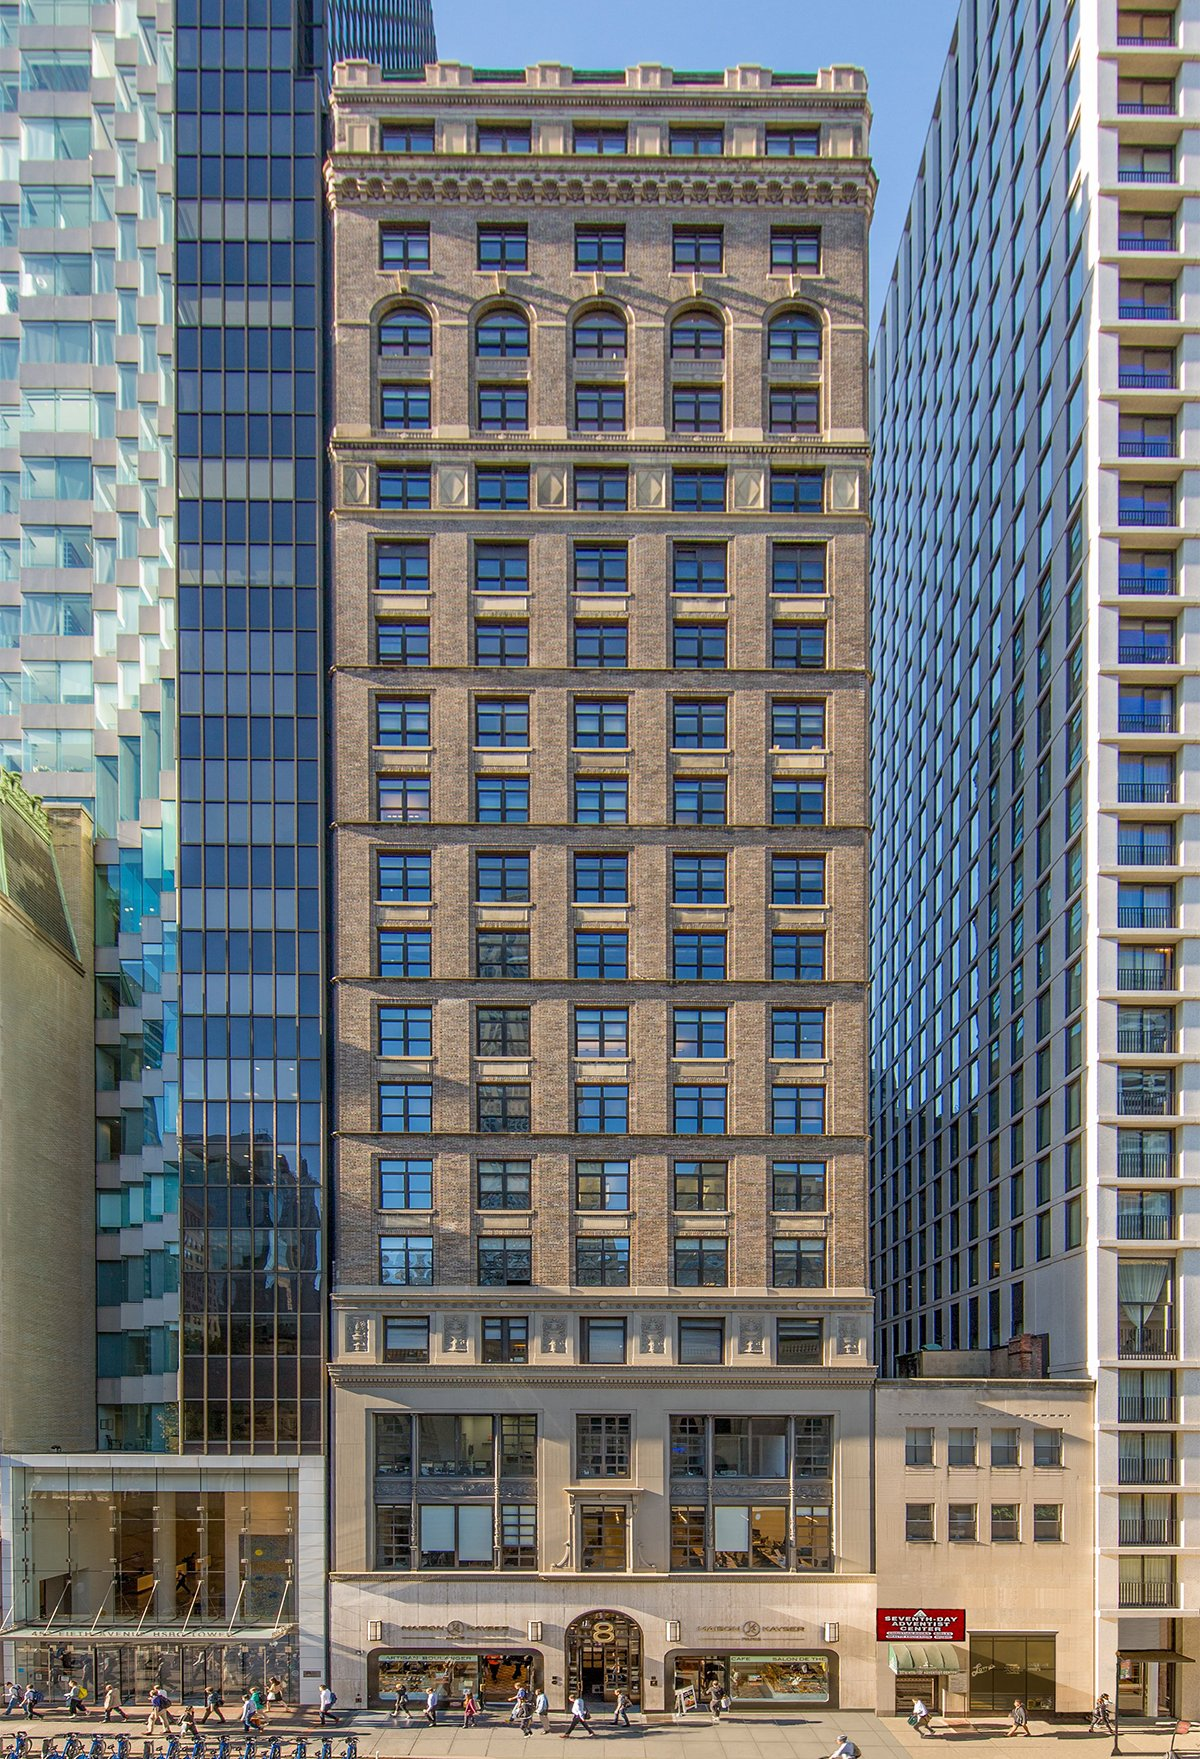 View of the exterior of 8 West 40th Street.